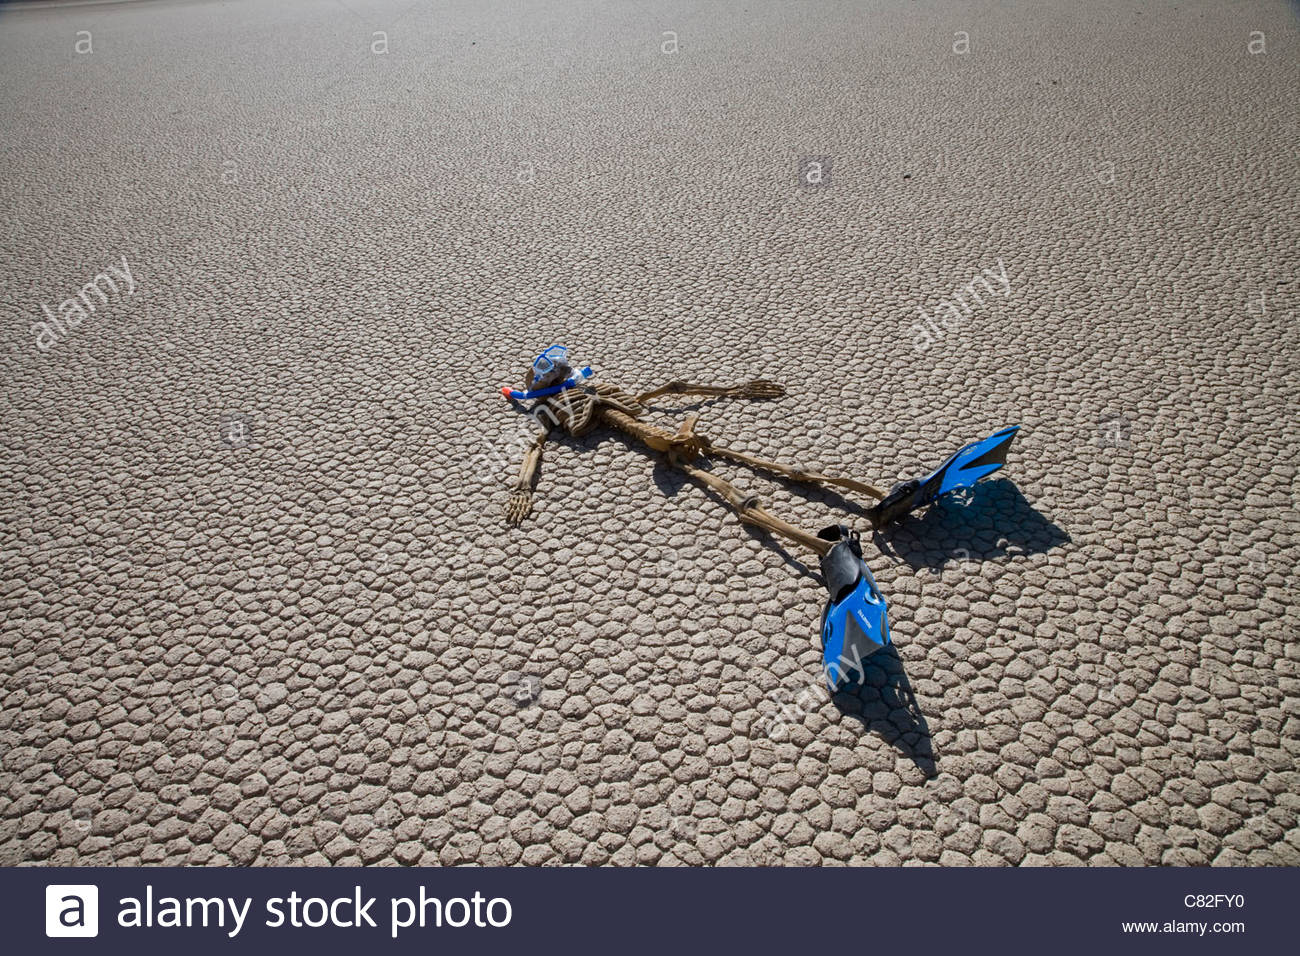 Skeleton with flippers on cracked earth,USA, California, Death Valley - Stock Image